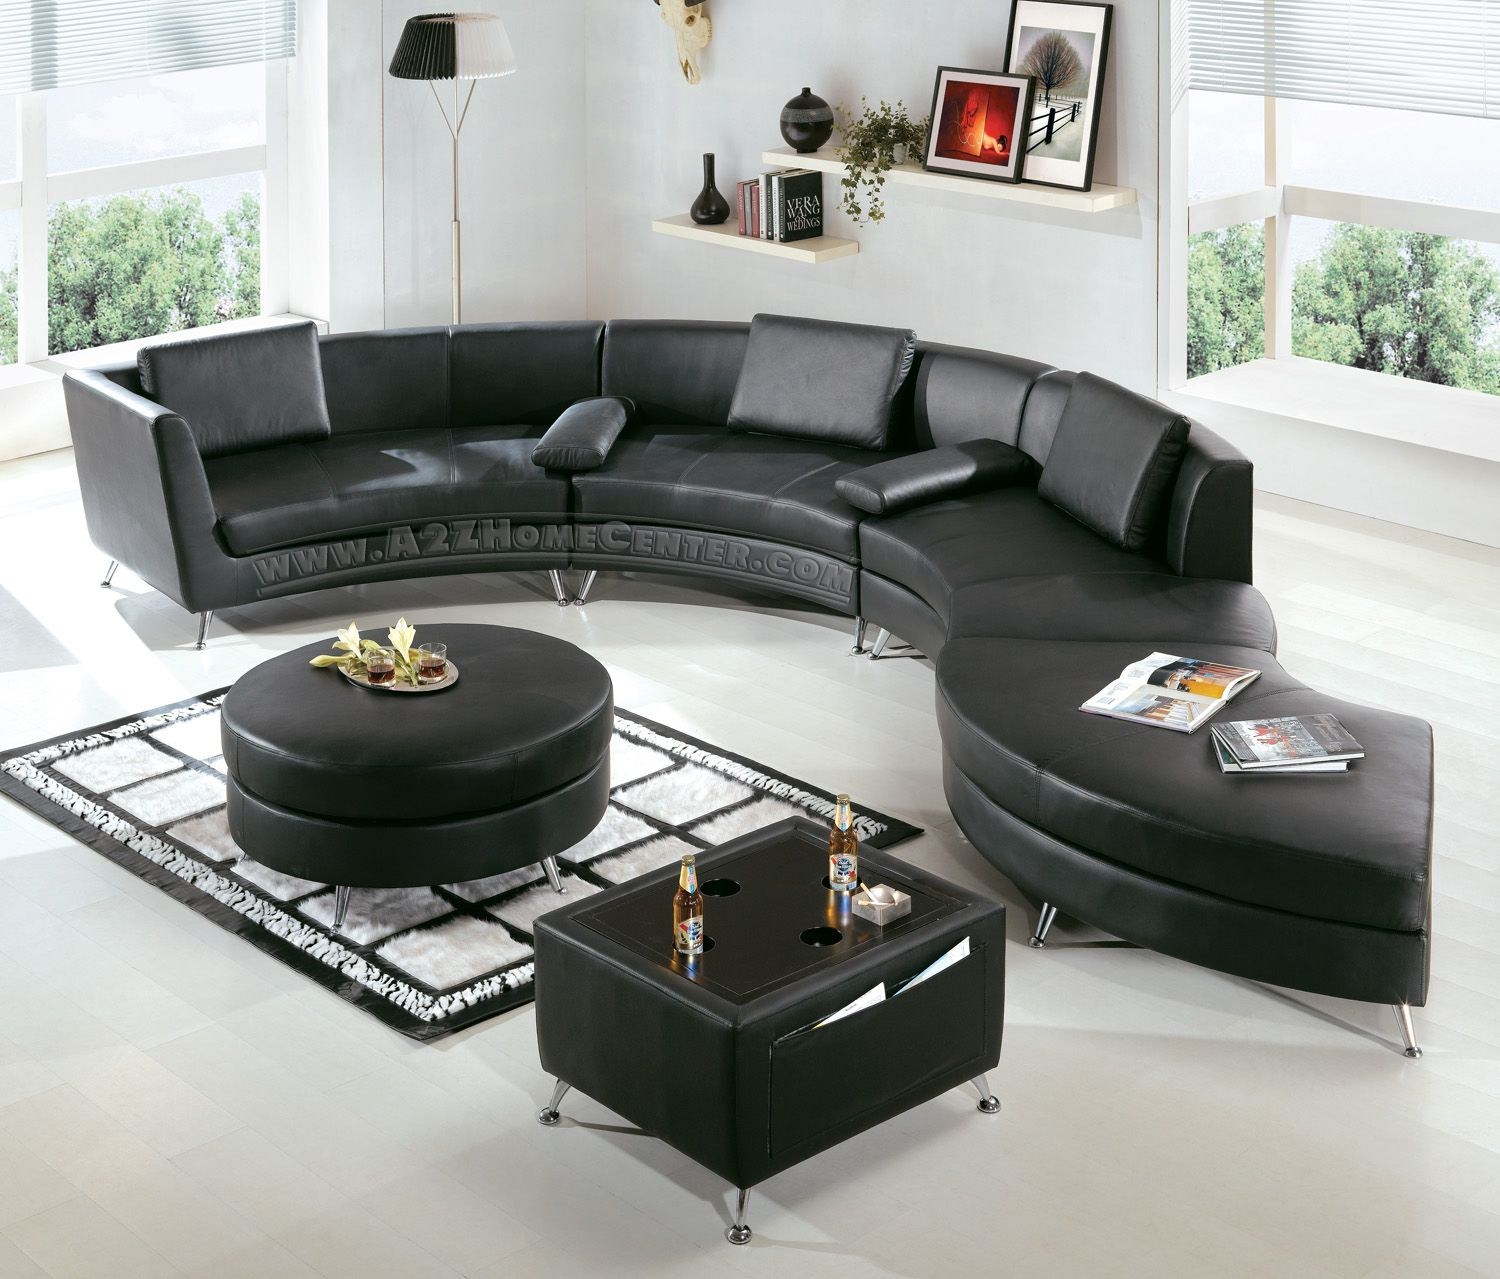 Buying modern contemporary furniture online allows you to visit a number of within a limited period of time. This also indicates that you get the desired furniture pieces without having to move out of your home.